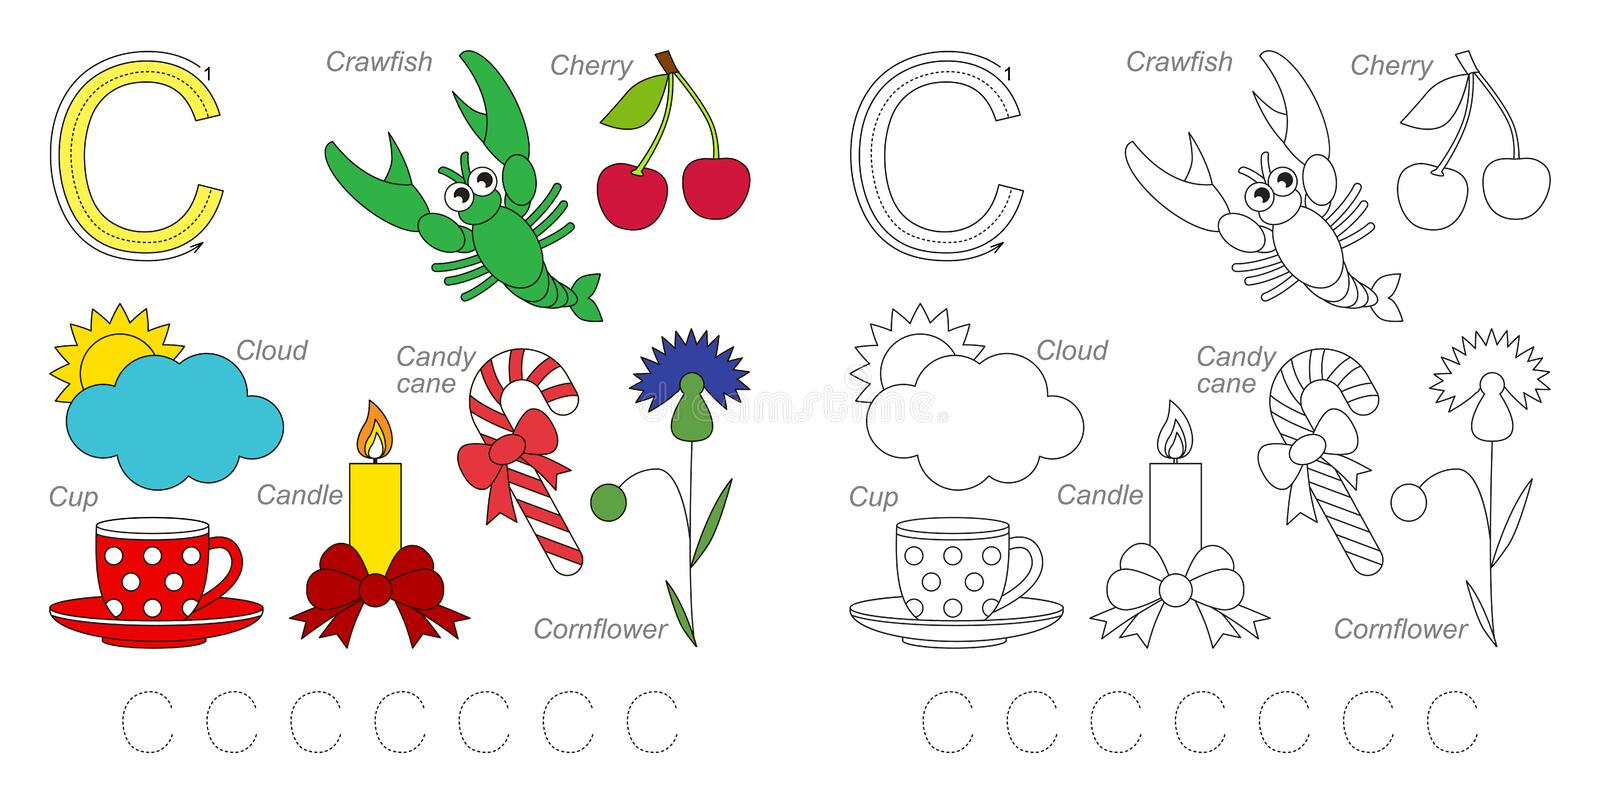 Pictures for letter C vector illustration